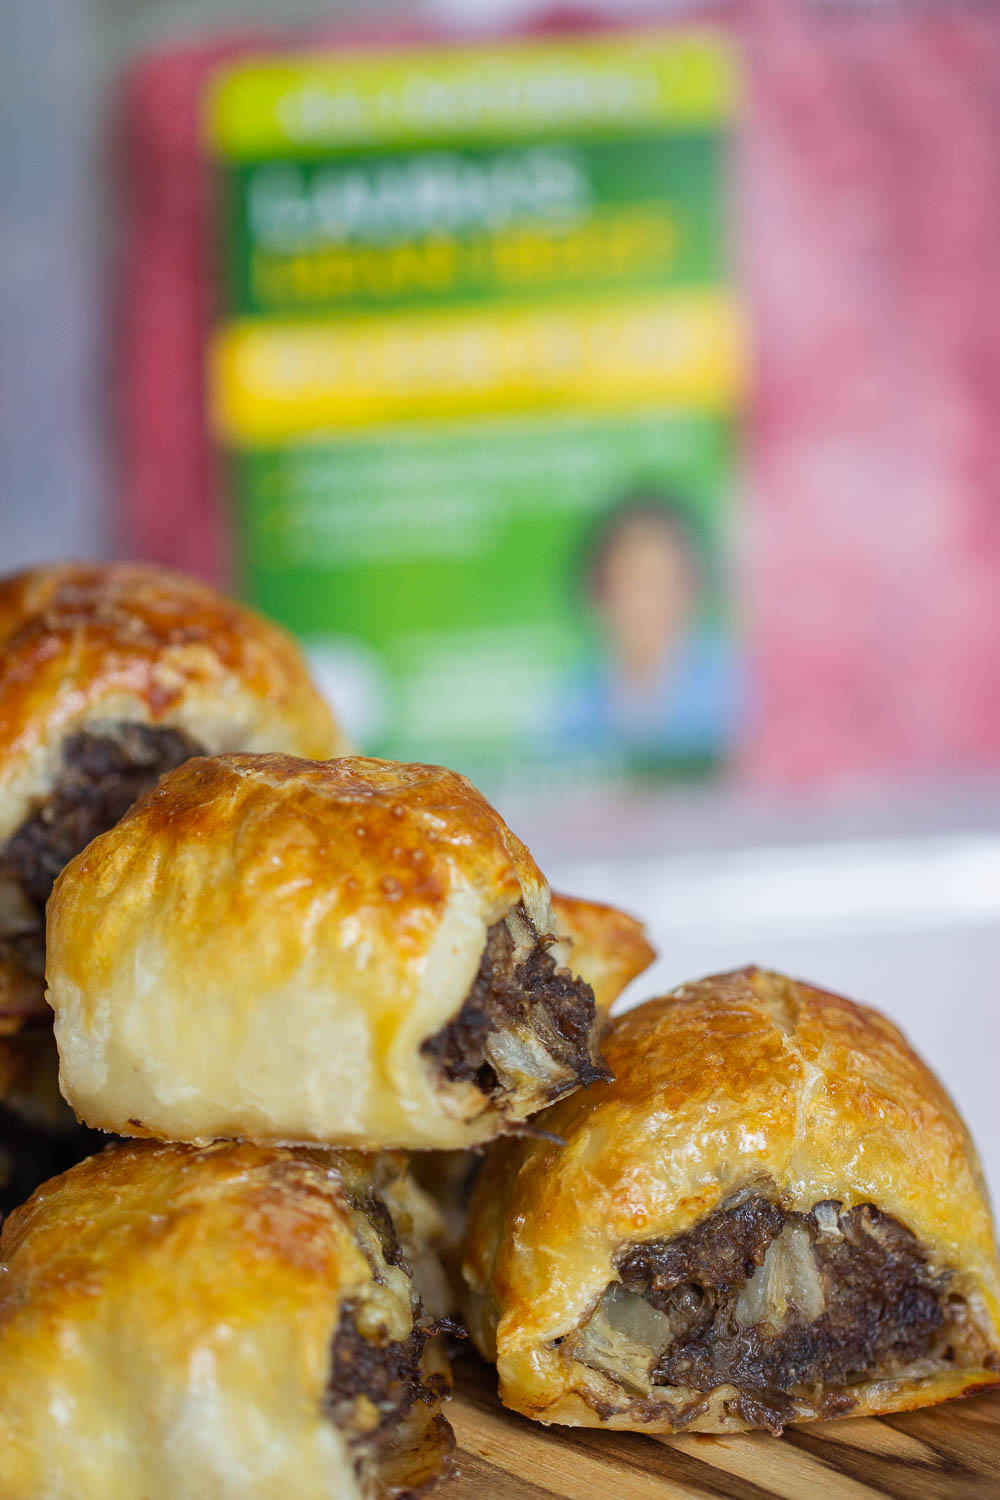 Who doesn't love a sausage roll? These Dutch sausage rolls are so easy to make and perfect for a quick snack, breakfast, and party appetizer. Bite-sized, yet they feed the crowd.